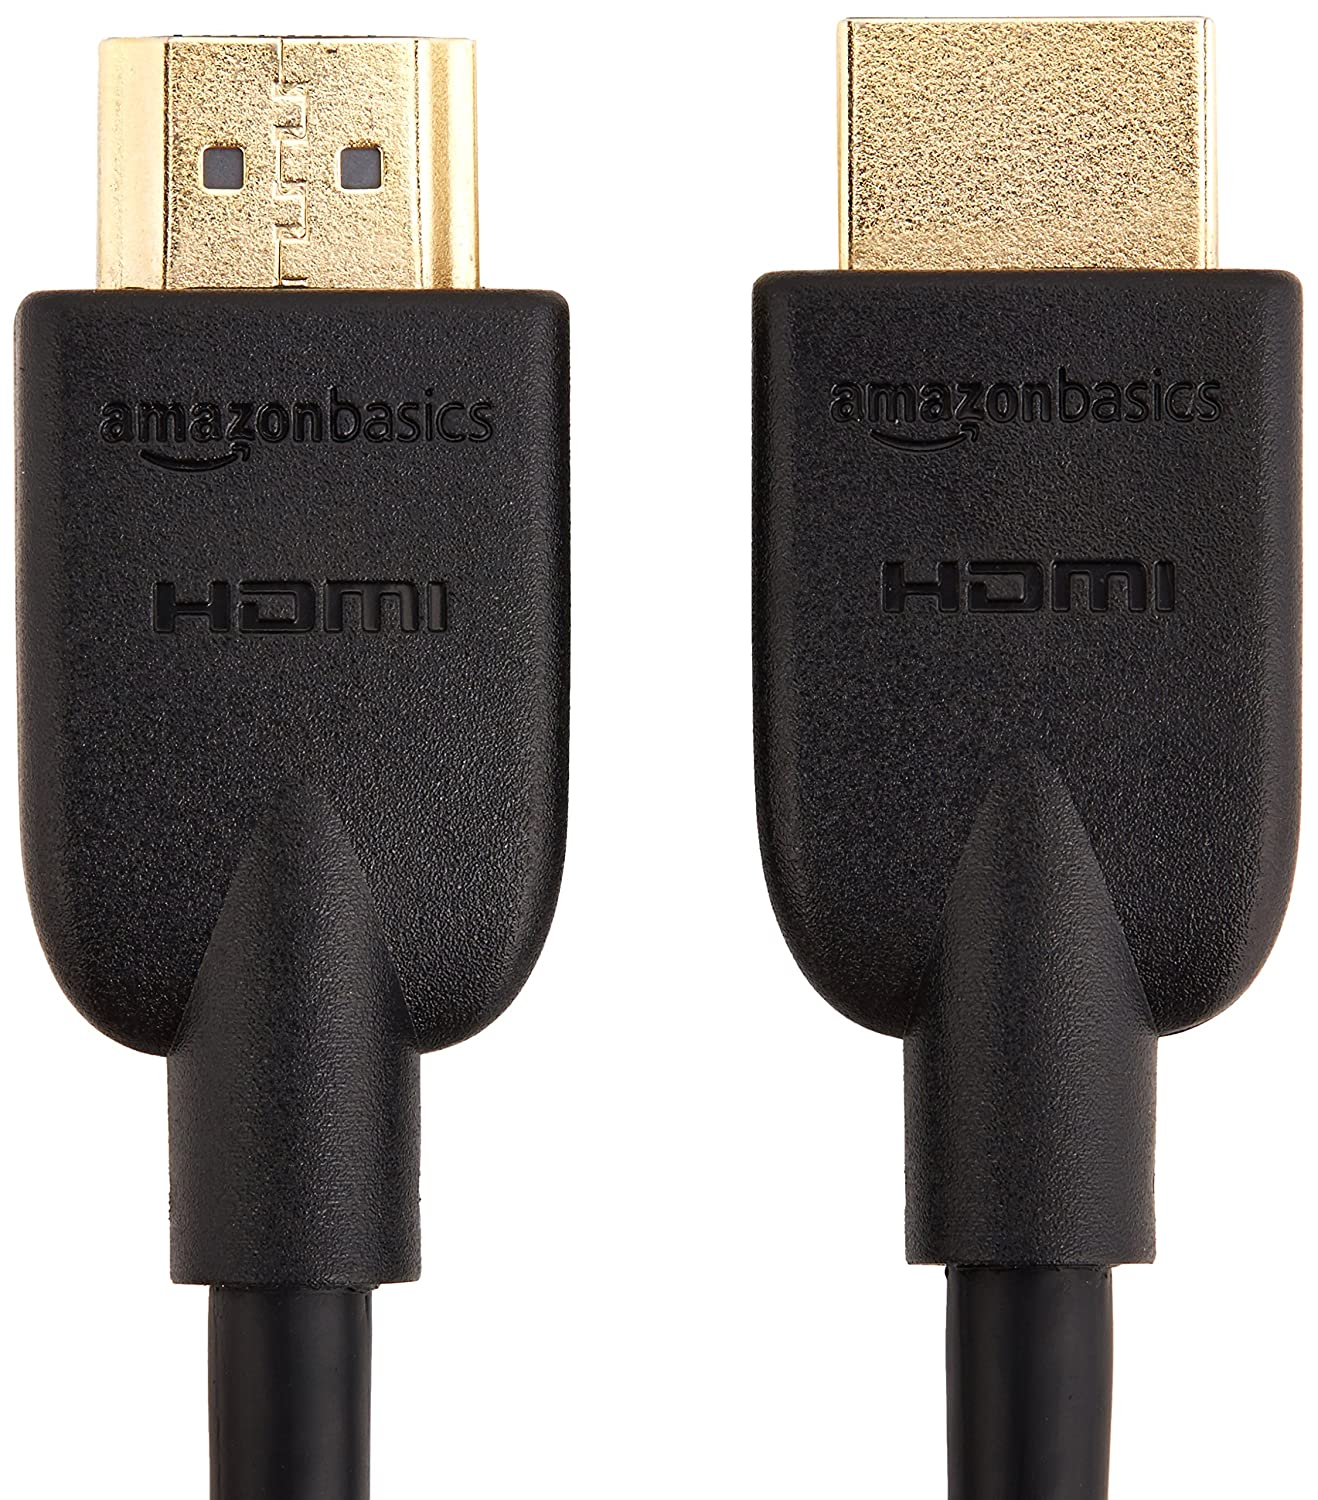 Basics High-Speed HDMI Cable 6 Feet 2-Pack